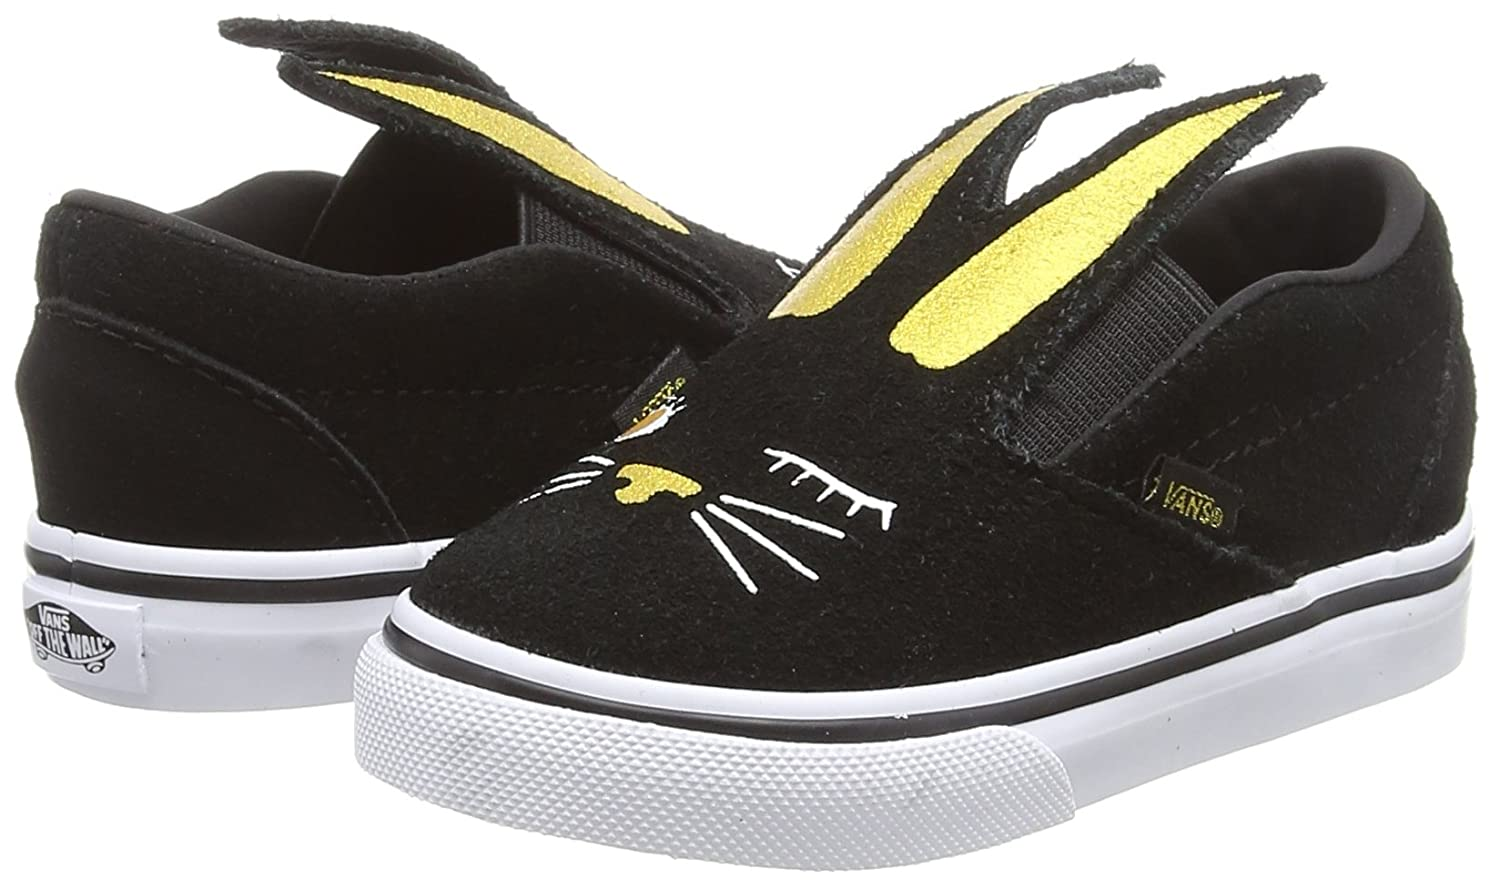 Vans Toddler Slip-on Bunny Shoes B07BWYLG51 Black/Gold 2.5 M US Toddler|Bunny Black/Gold B07BWYLG51 4fdf6a